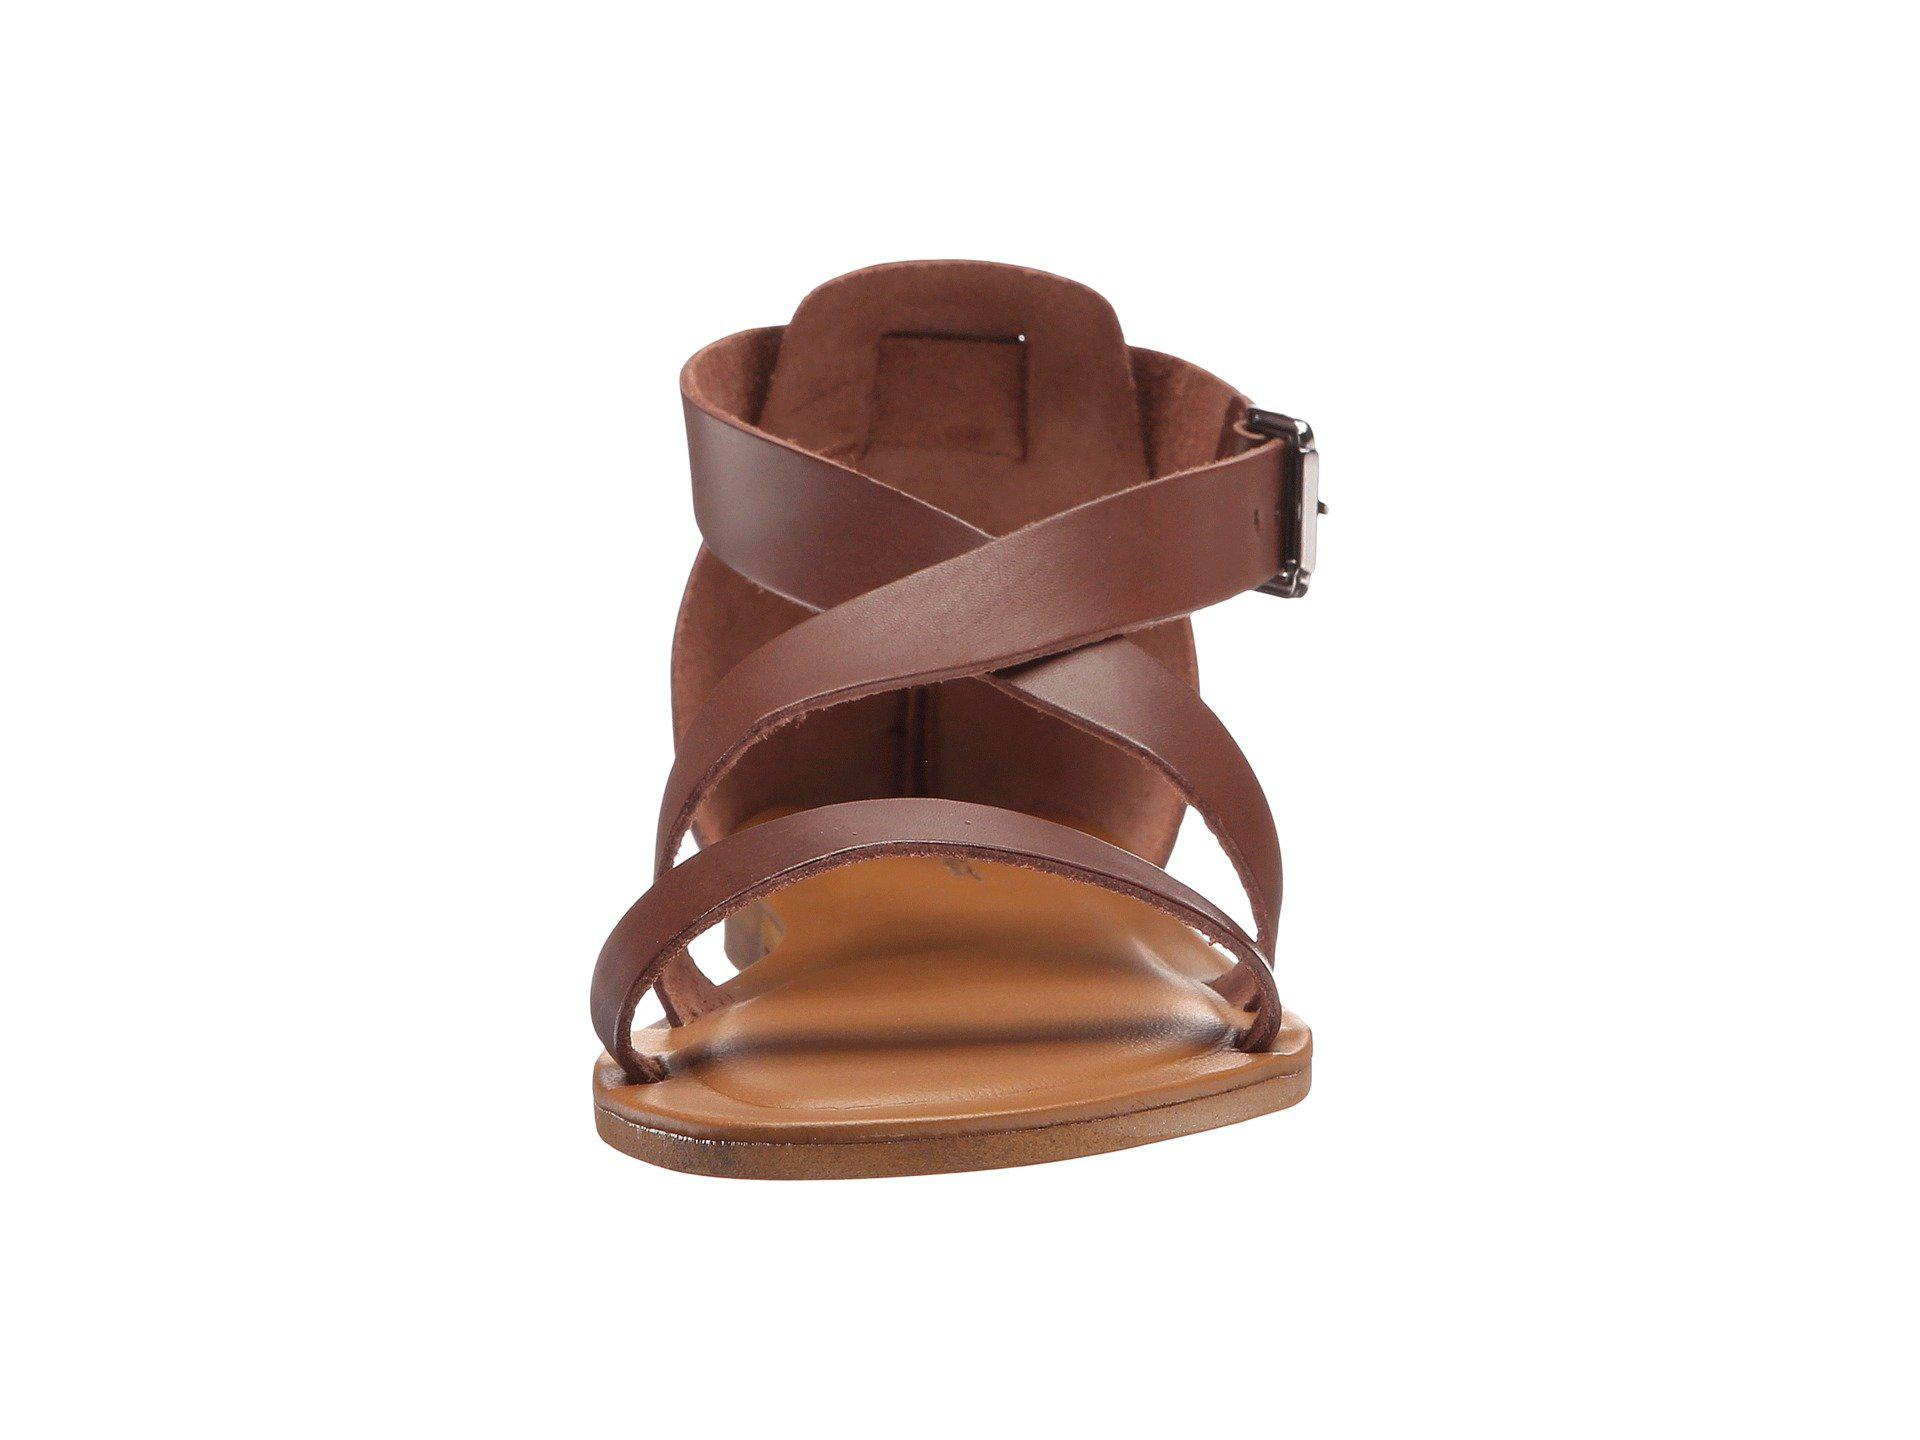 d33019f0541b Lyst - Massimo Matteo 3 Band Sandal in Brown